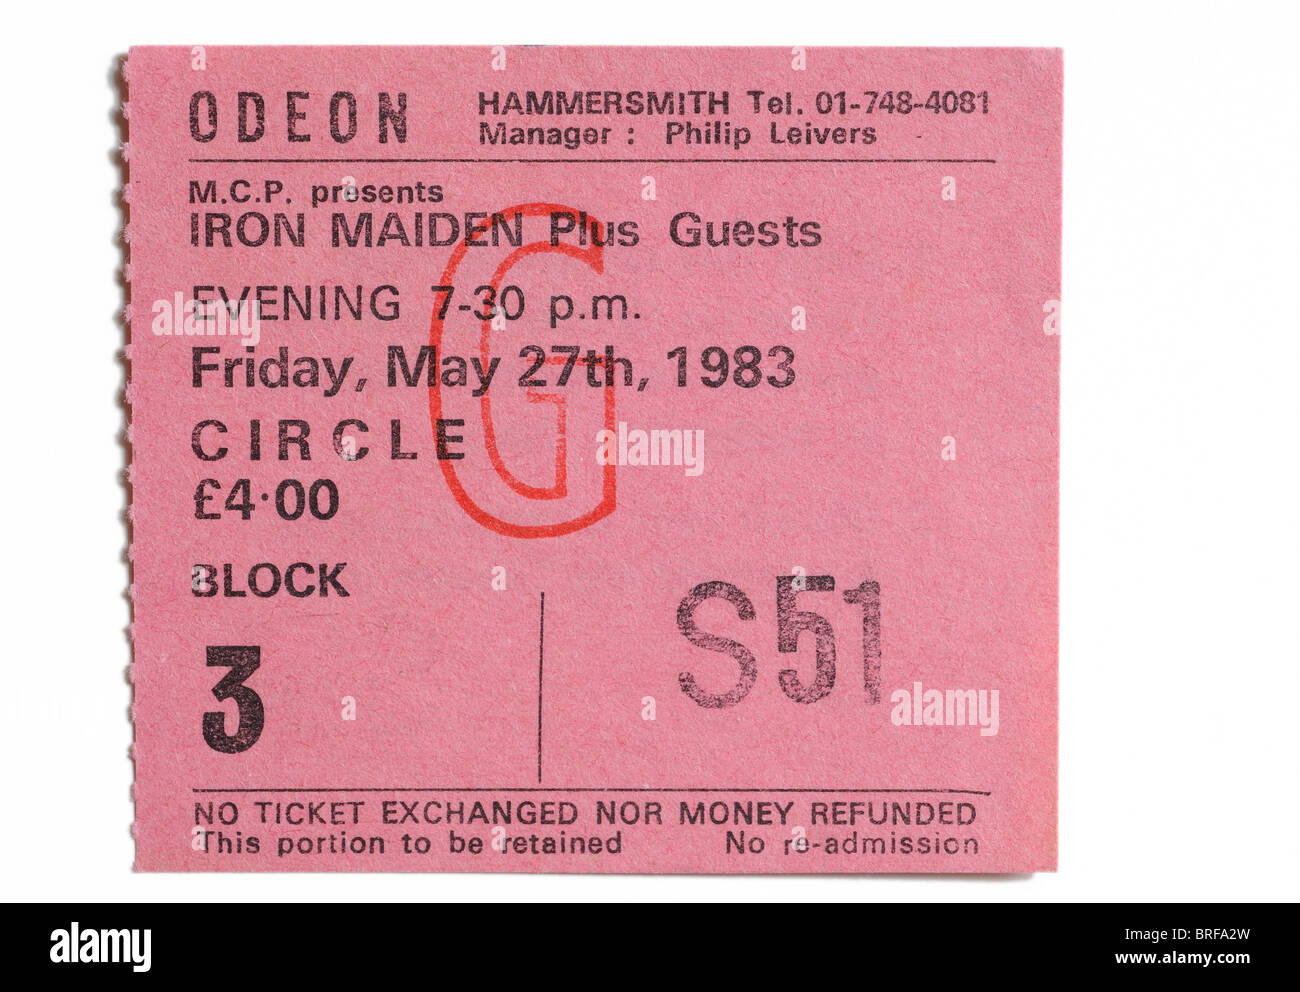 a concert ticket for iron maiden at the legendary hammersmith odeon stock photo 31684657 alamy. Black Bedroom Furniture Sets. Home Design Ideas